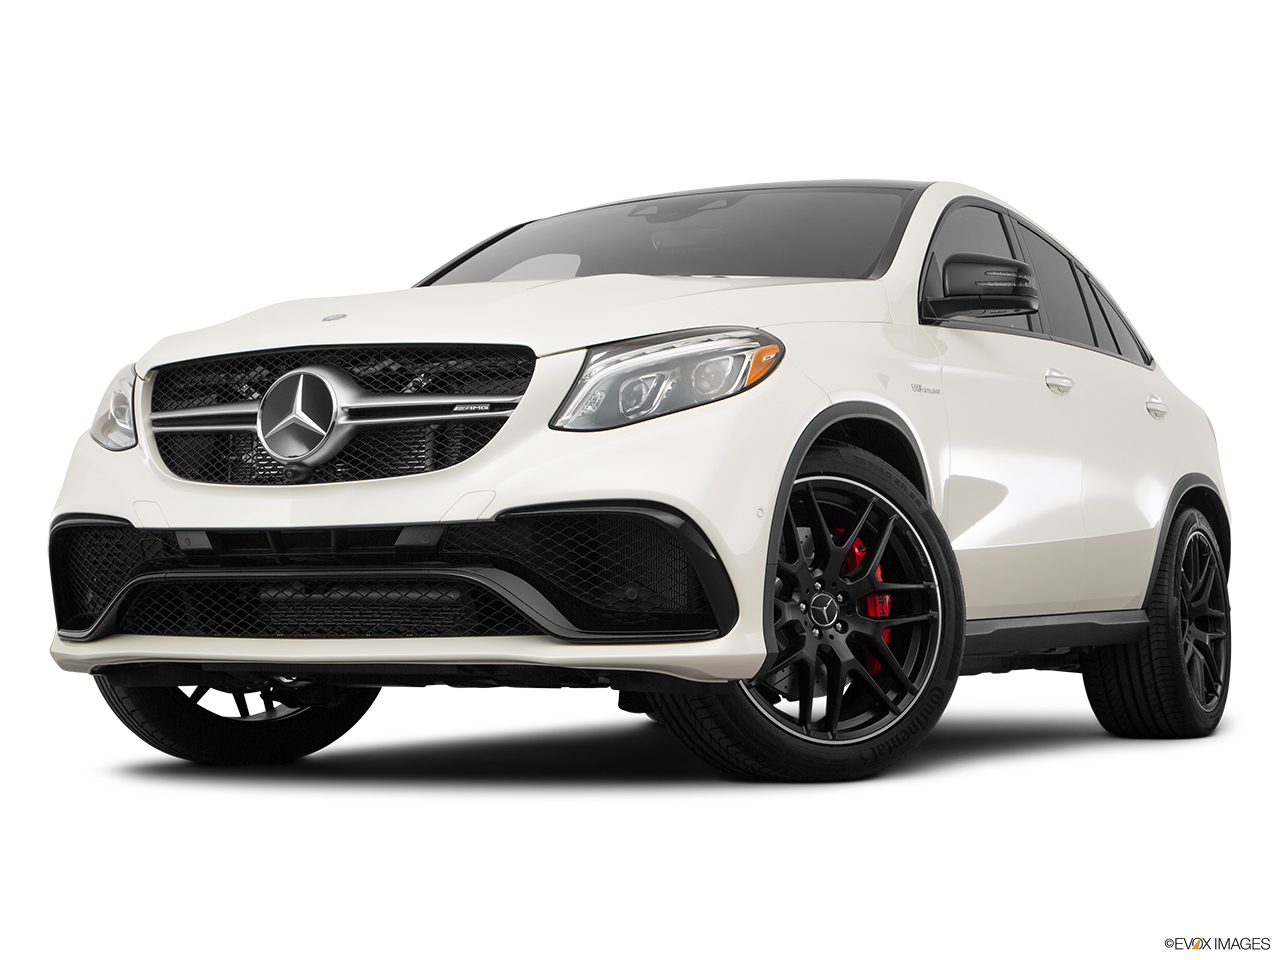 Car pictures list for mercedes benz gle class 2018 gle 63 for Mercedes benz qatar